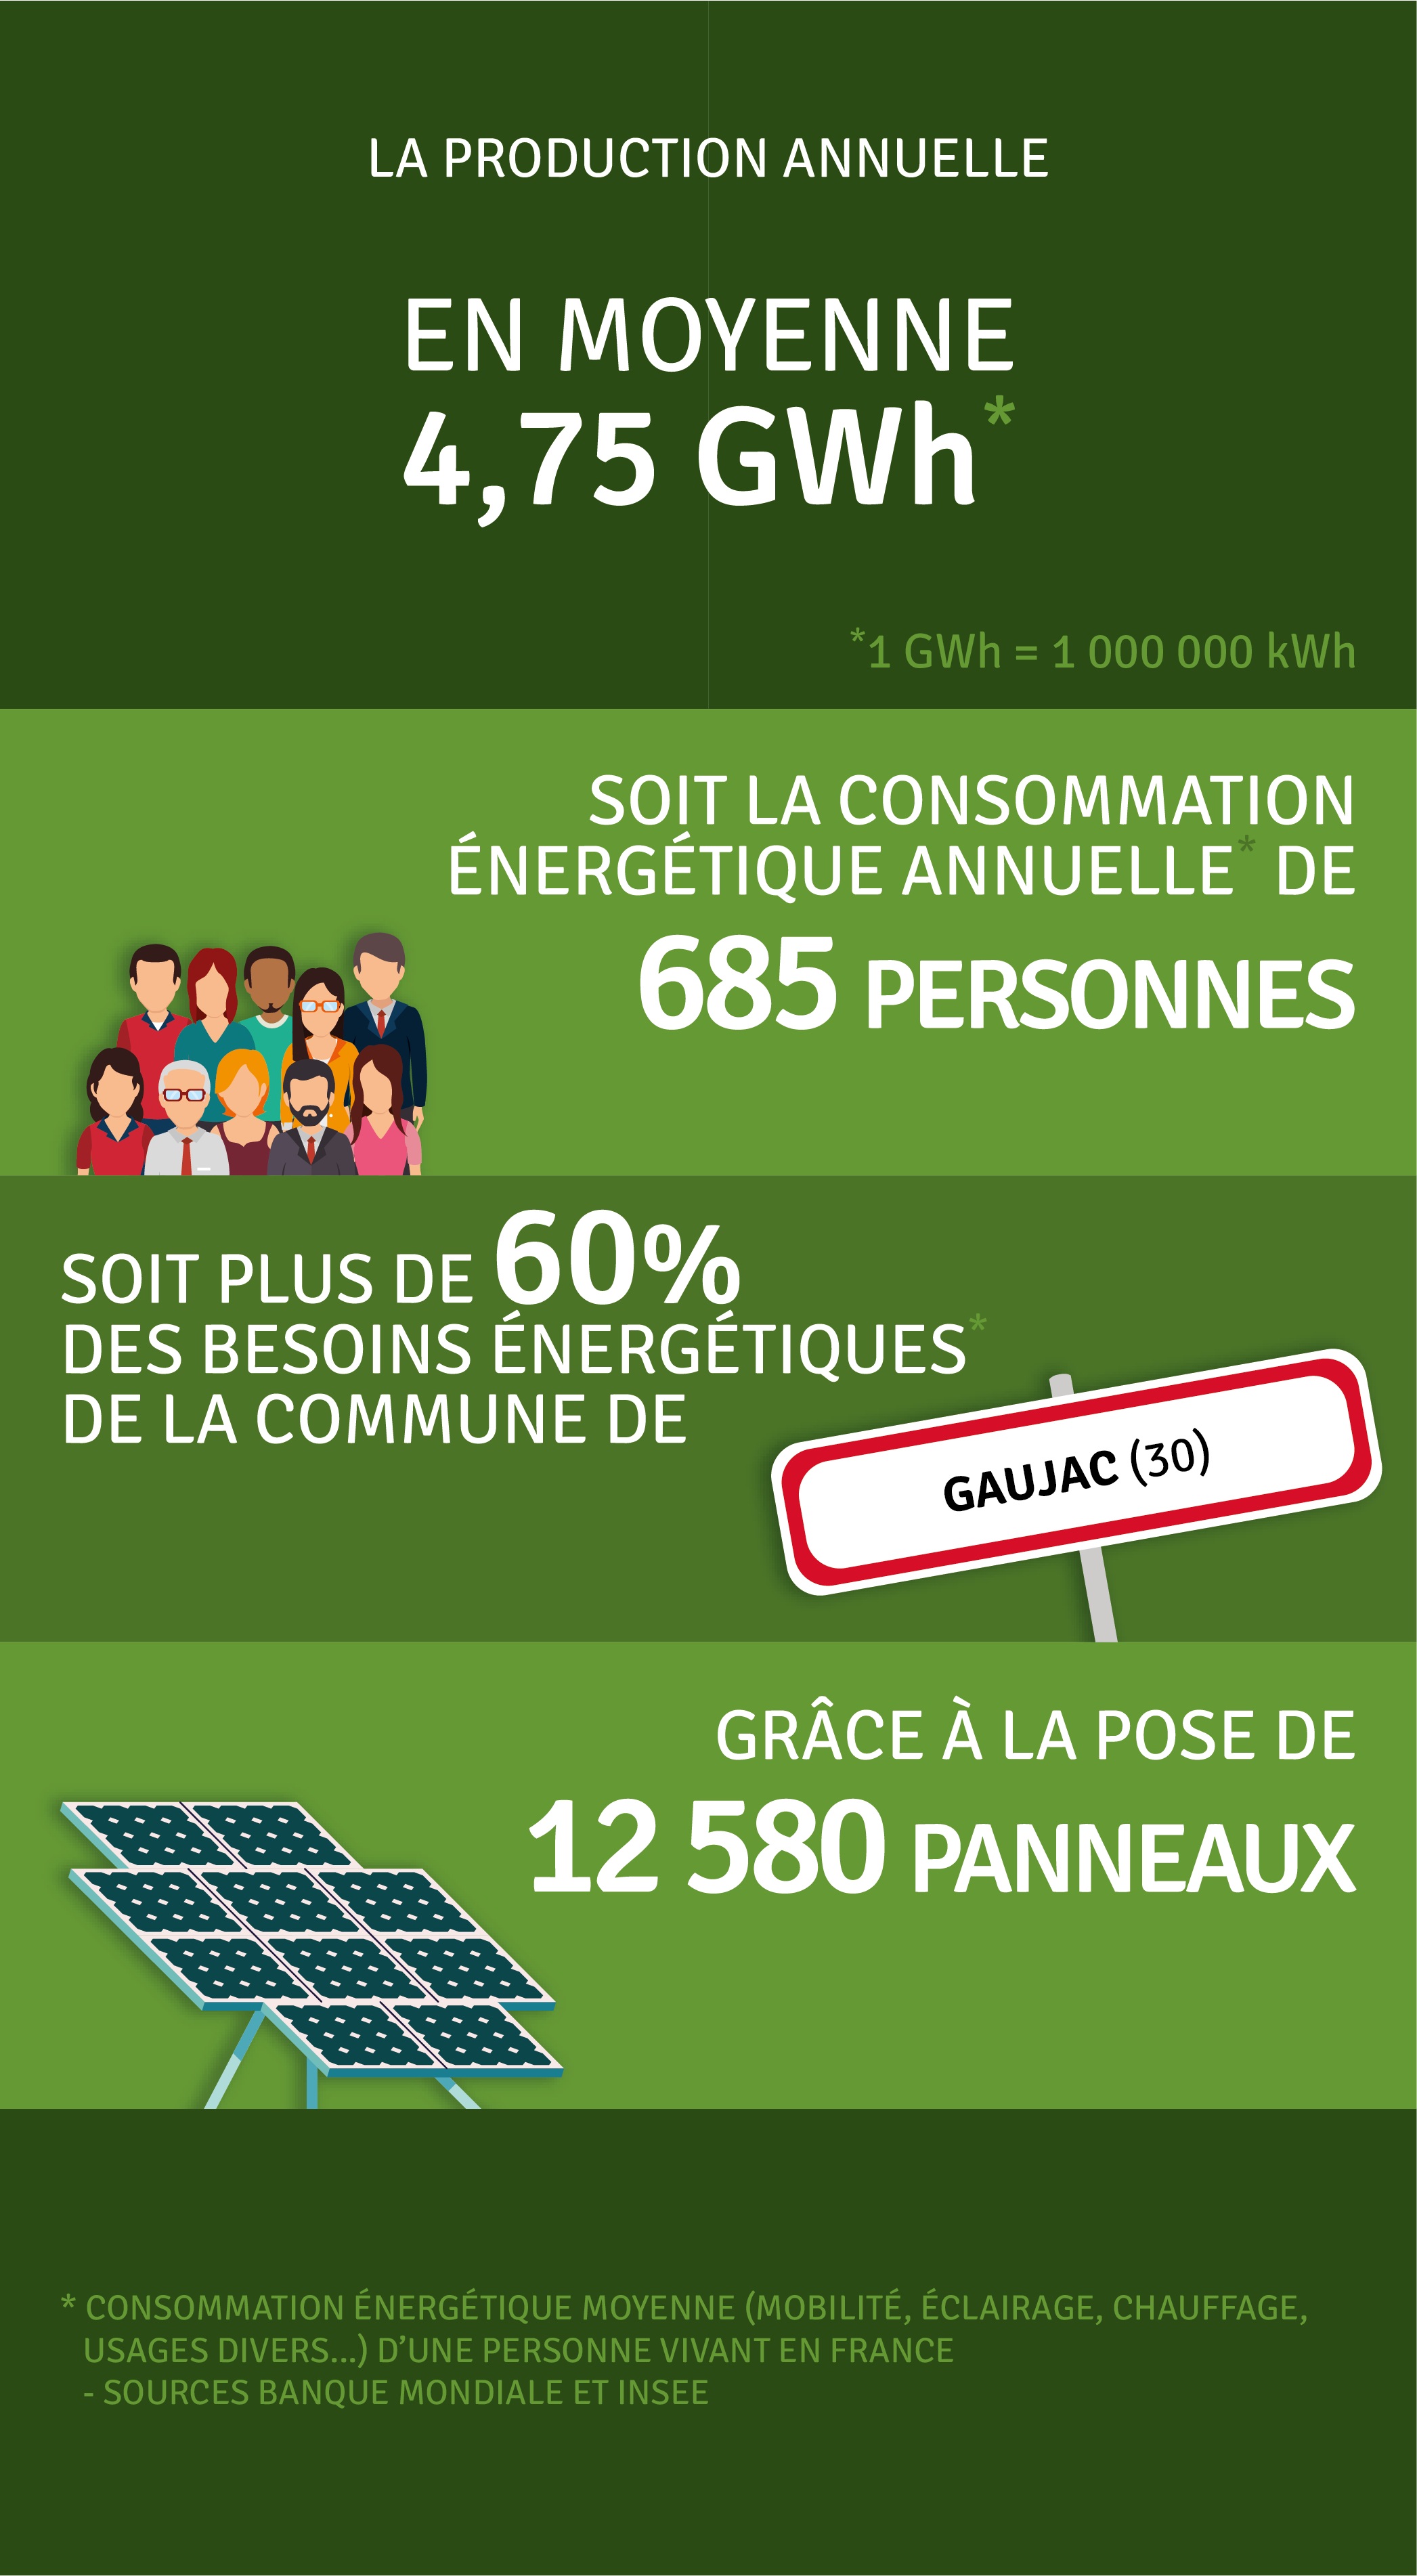 Production annuelle 4 760 000 kWh